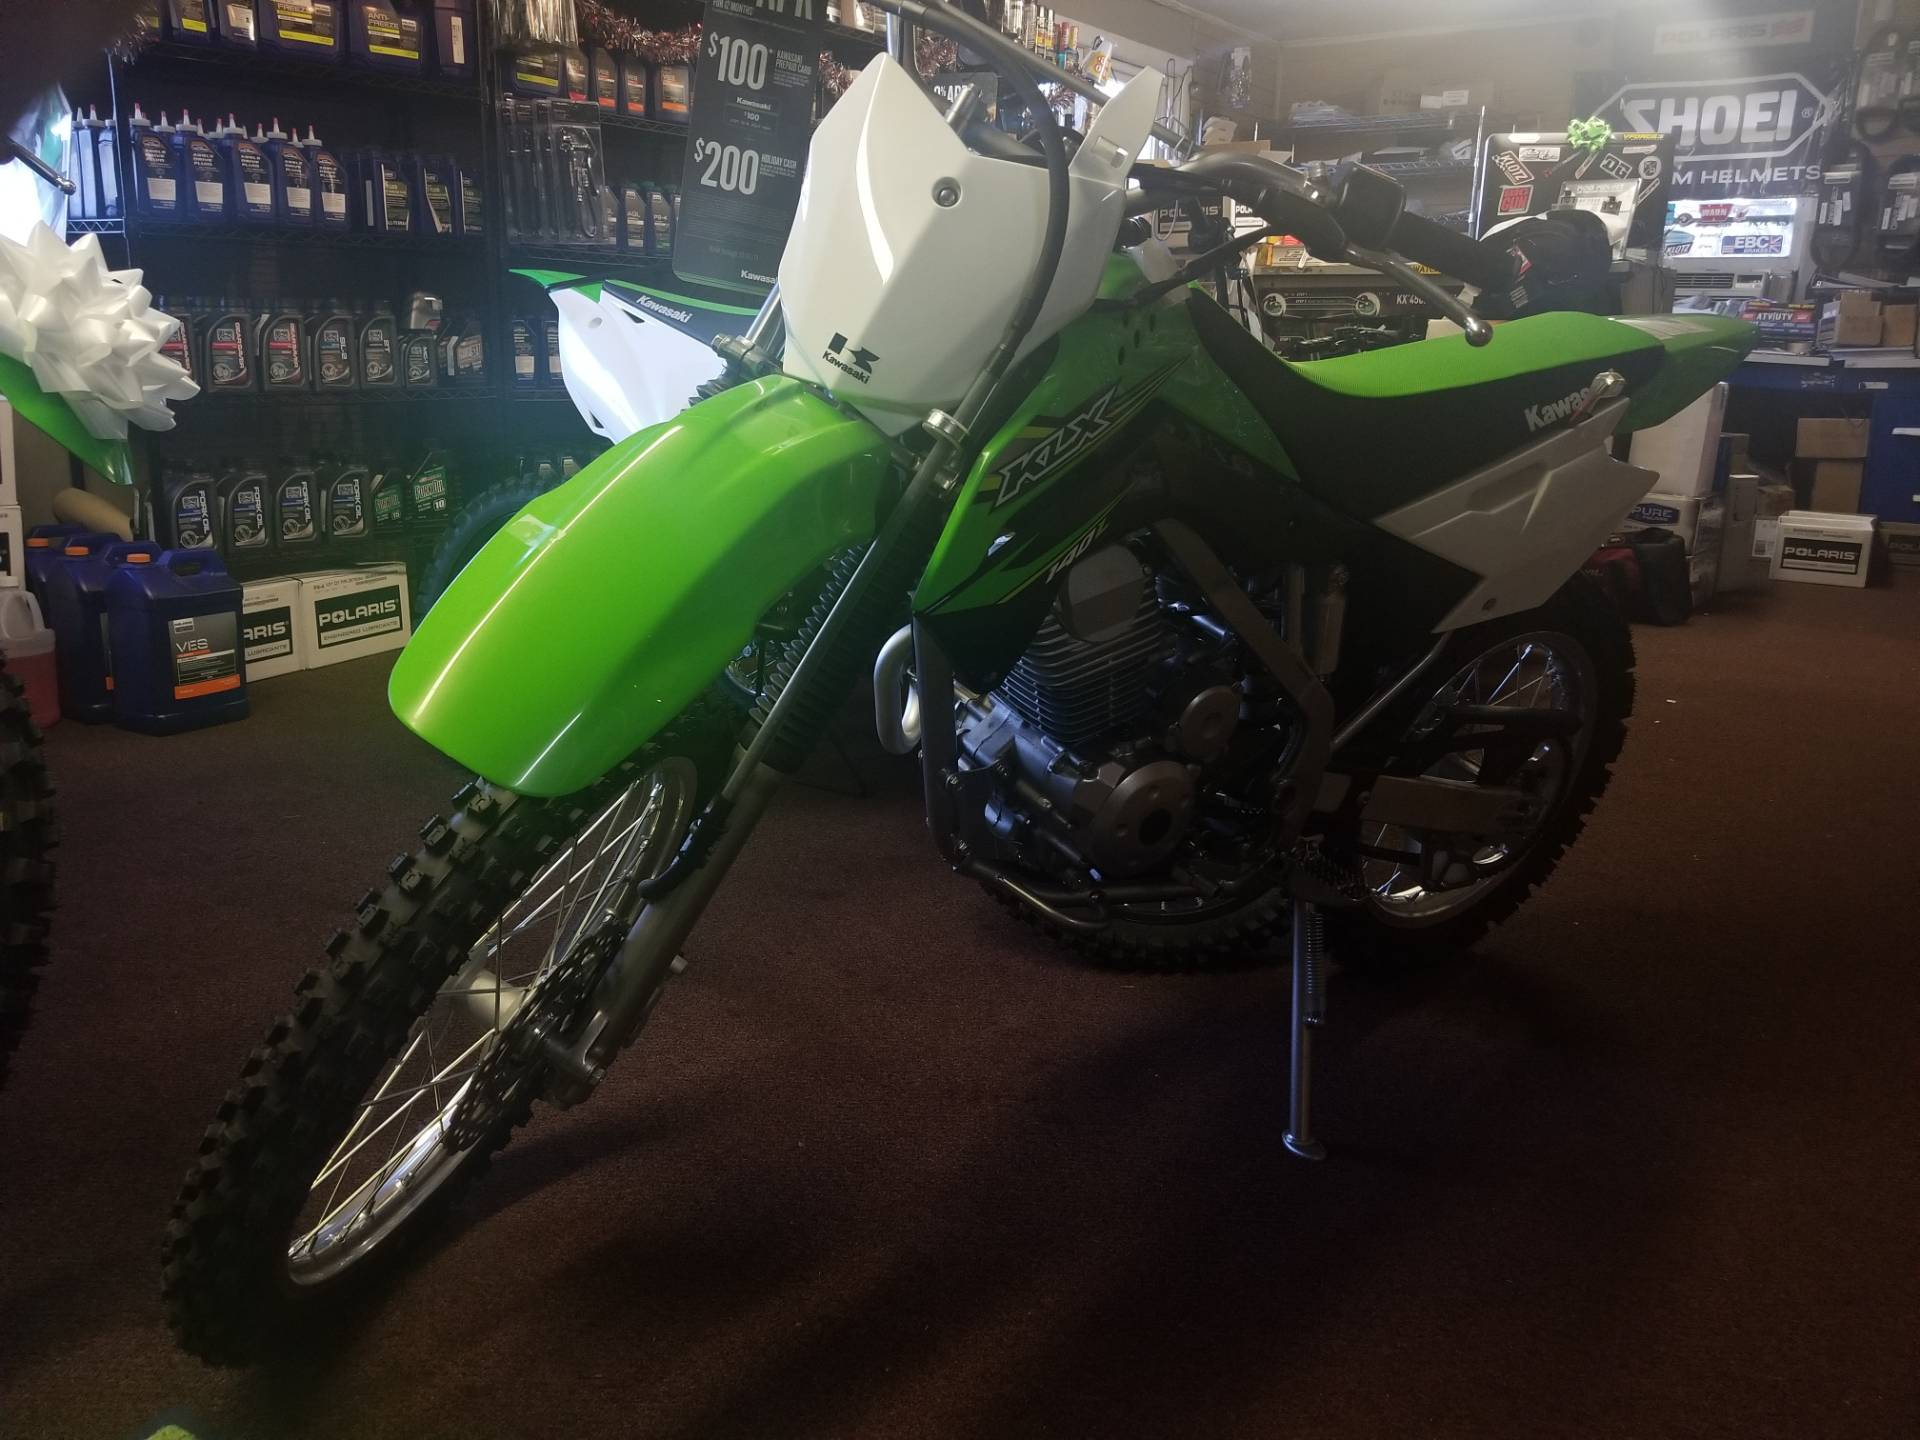 2018 Kawasaki KLX 140L for sale 4587